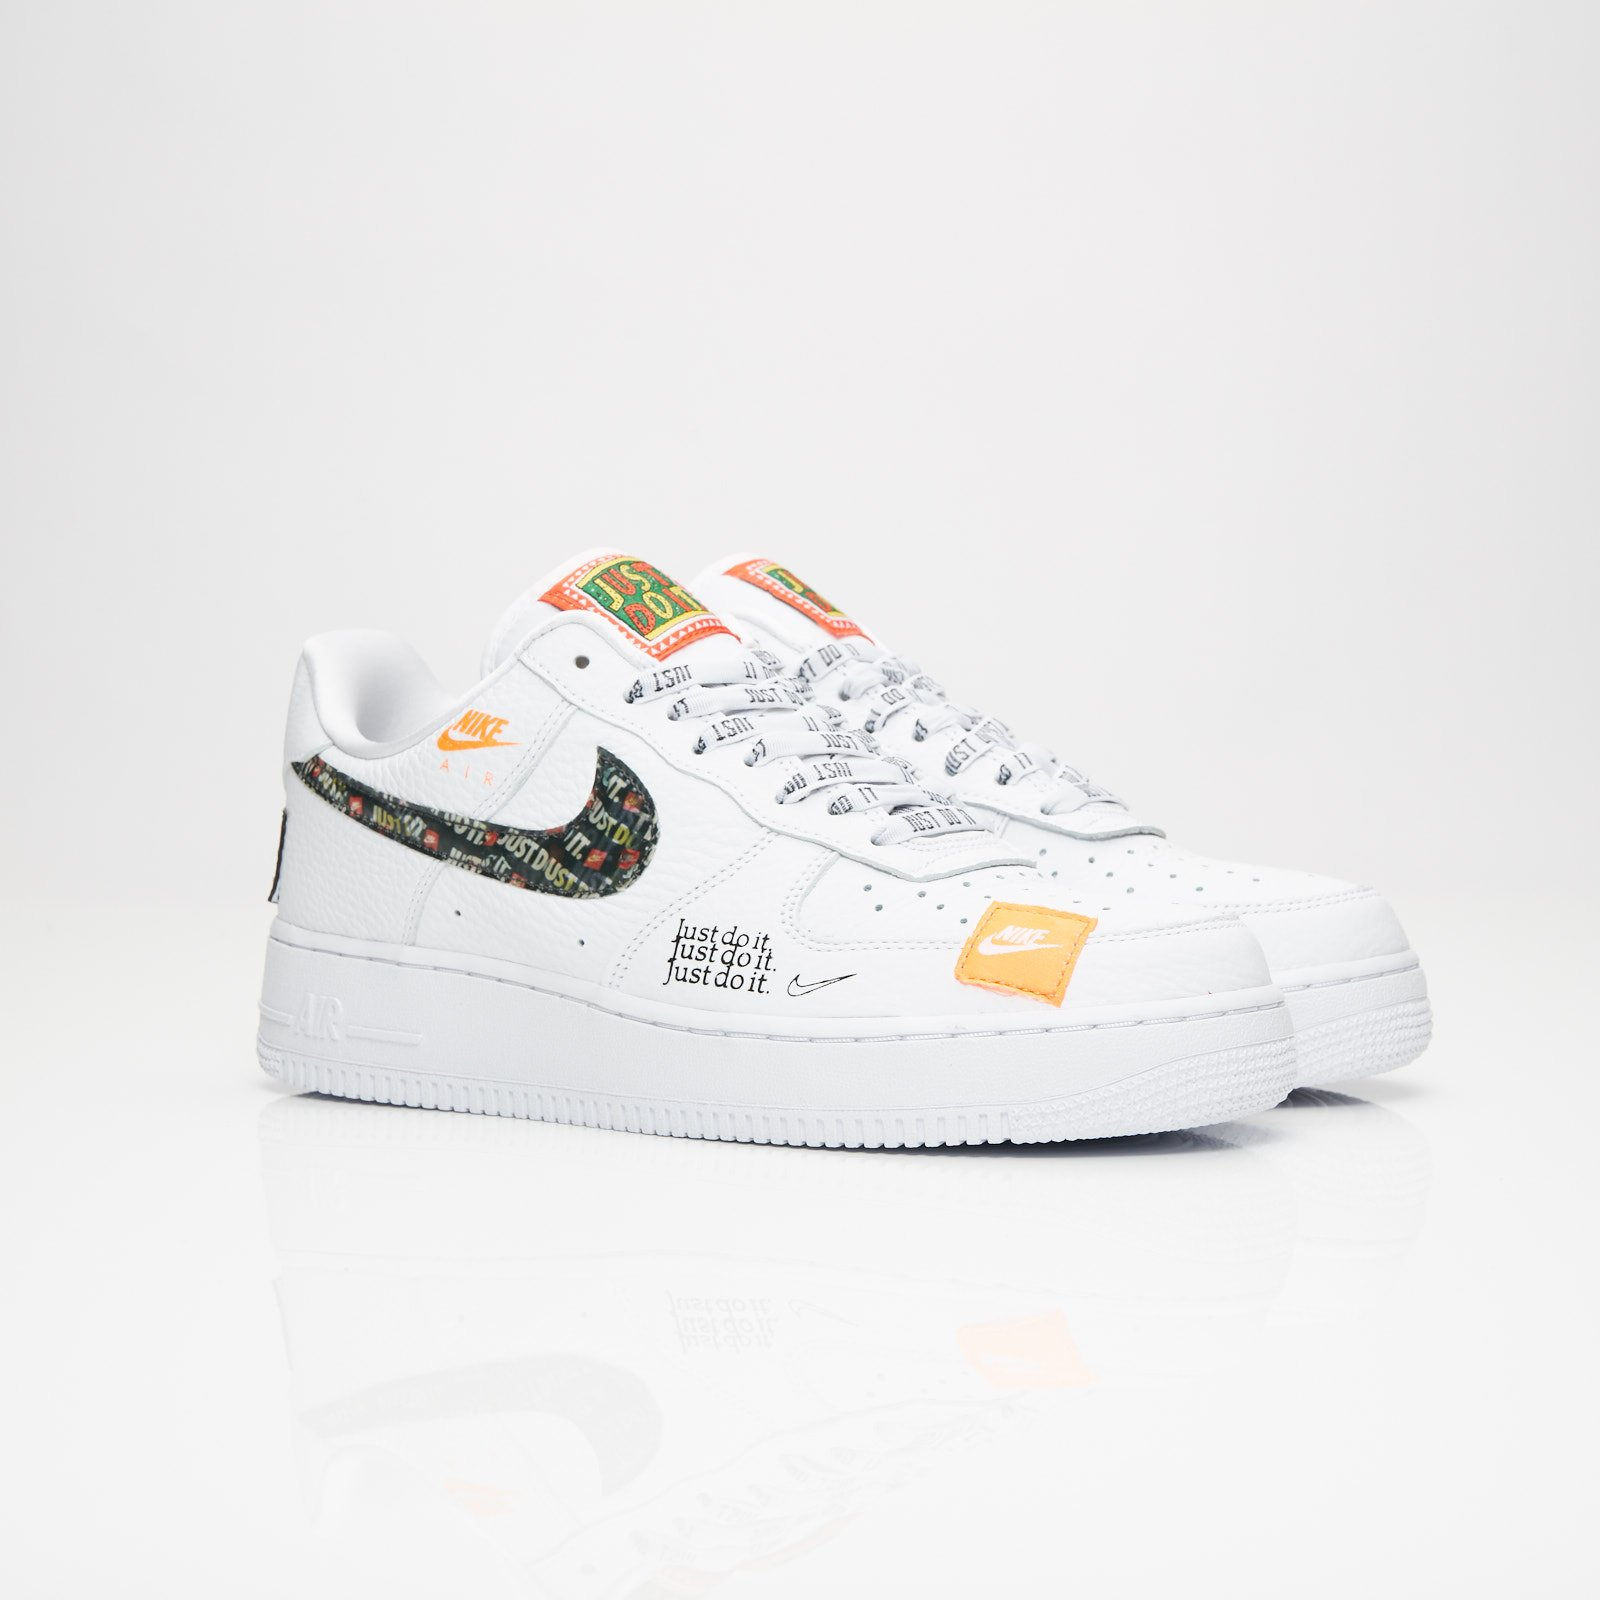 Nike Air Force 1 07 Premium Just Do It - Ar7719-100 - Sneakersnstuff ... bc0a9118c